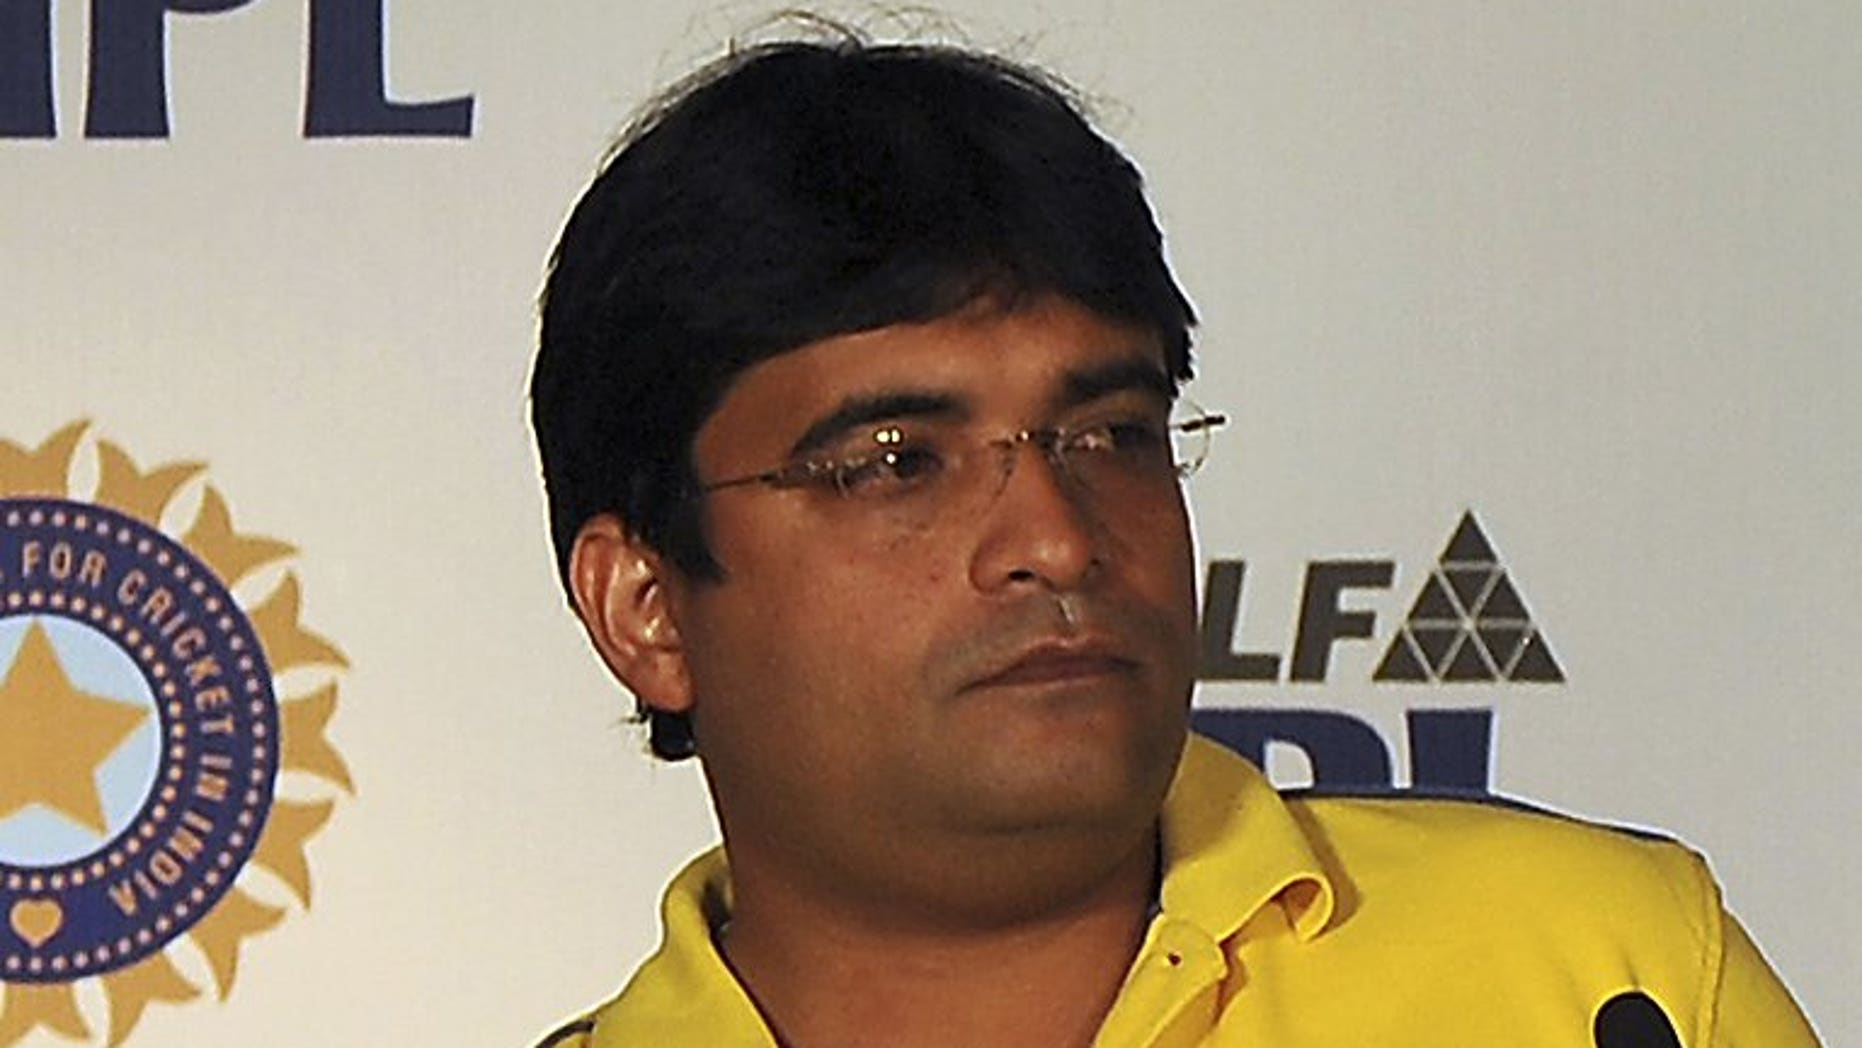 Former 'Chennai Super Kings' owner Gurunath Meiyappan attends a press conference iin Bangalore, on February 4, 2012. Mumbai police have filed charges against Meiyappan -- the son-in-law of India's cricket chief -- for gambling, cheating and conspiracy, in a scandal that has engulfed the country's Twenty20 league.